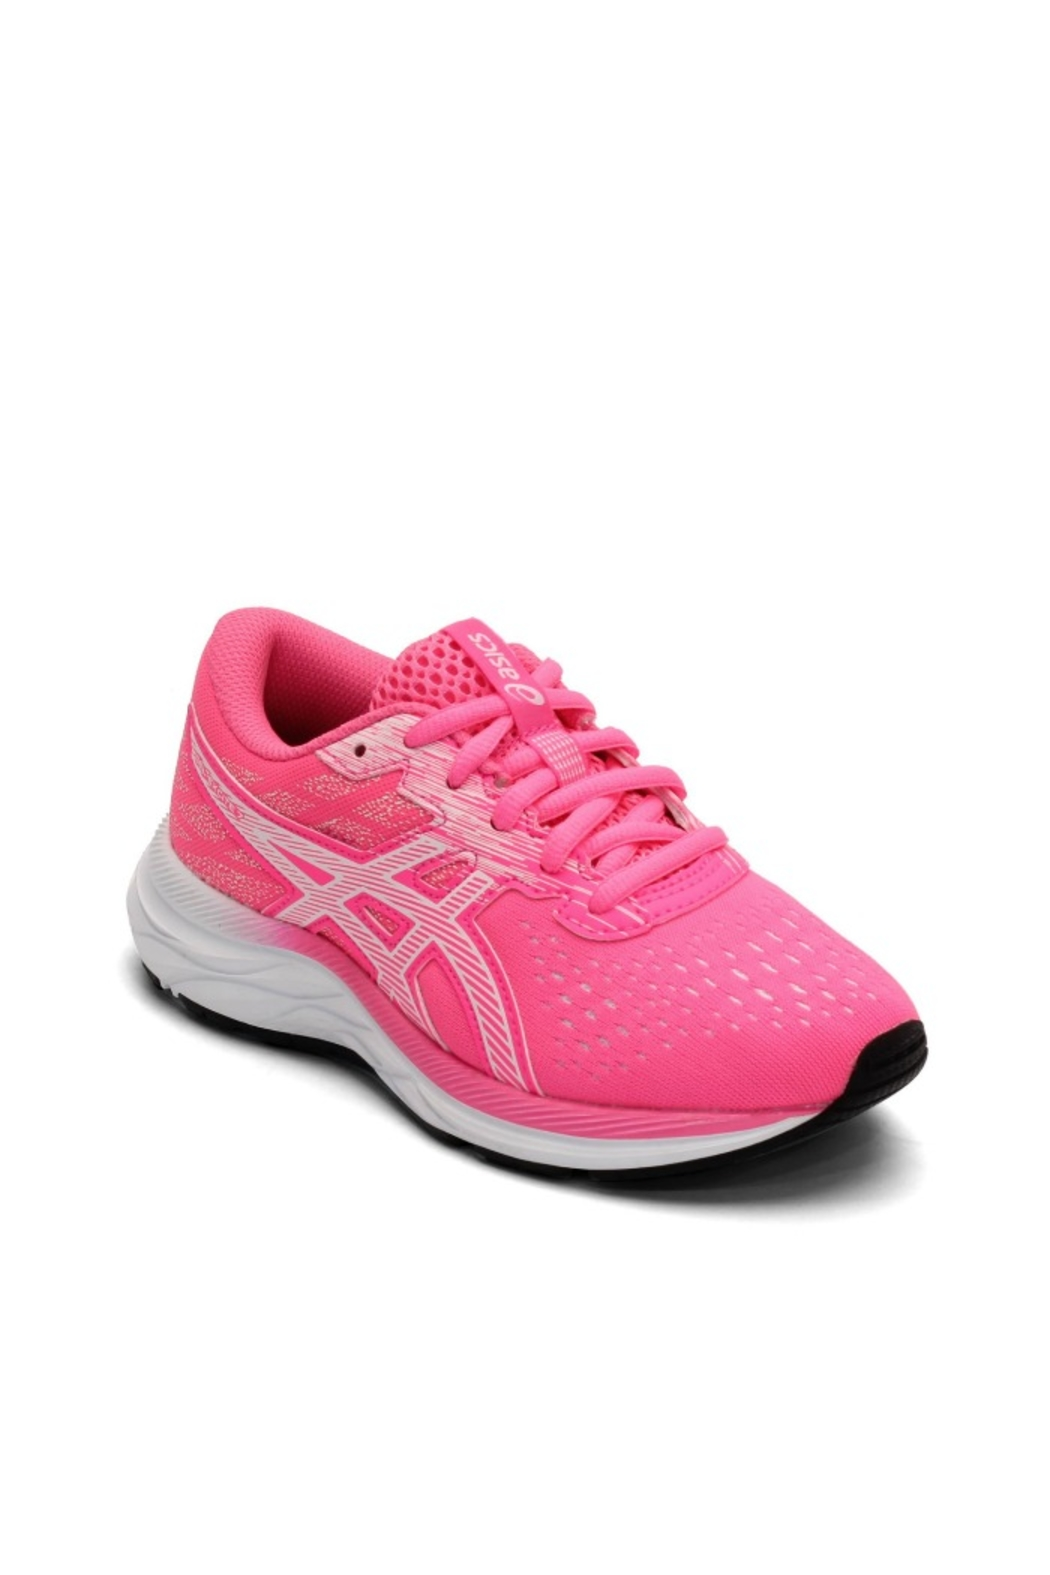 Asics Gel Excite 7 GS in Hot Pink/White - Main Image